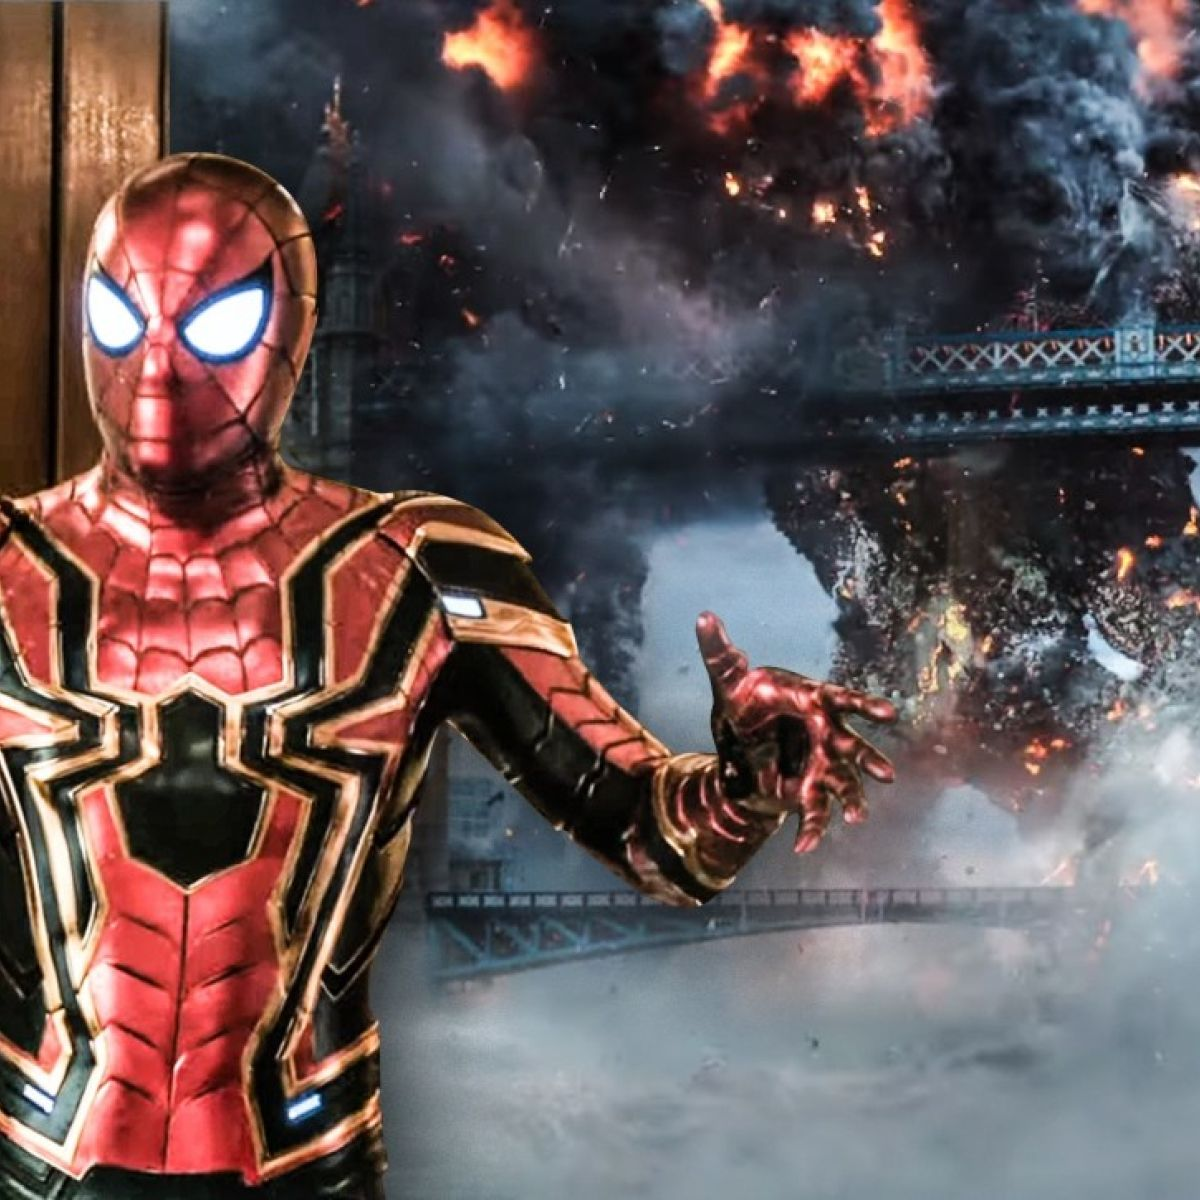 The Spider-Man: Far From Home trailer takes spoiler paranoia